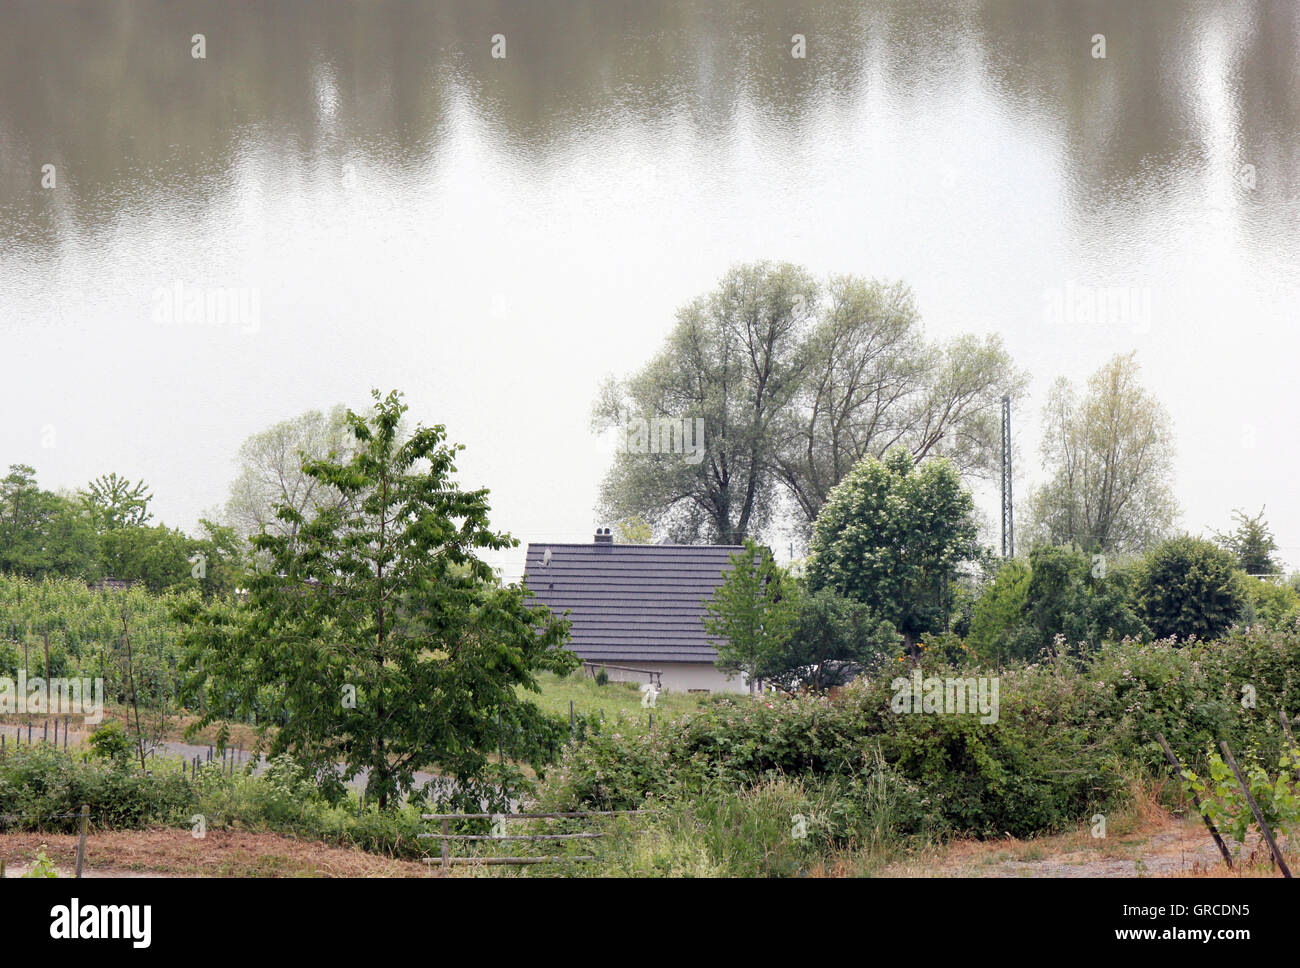 Idyll At The Water - Stock Image